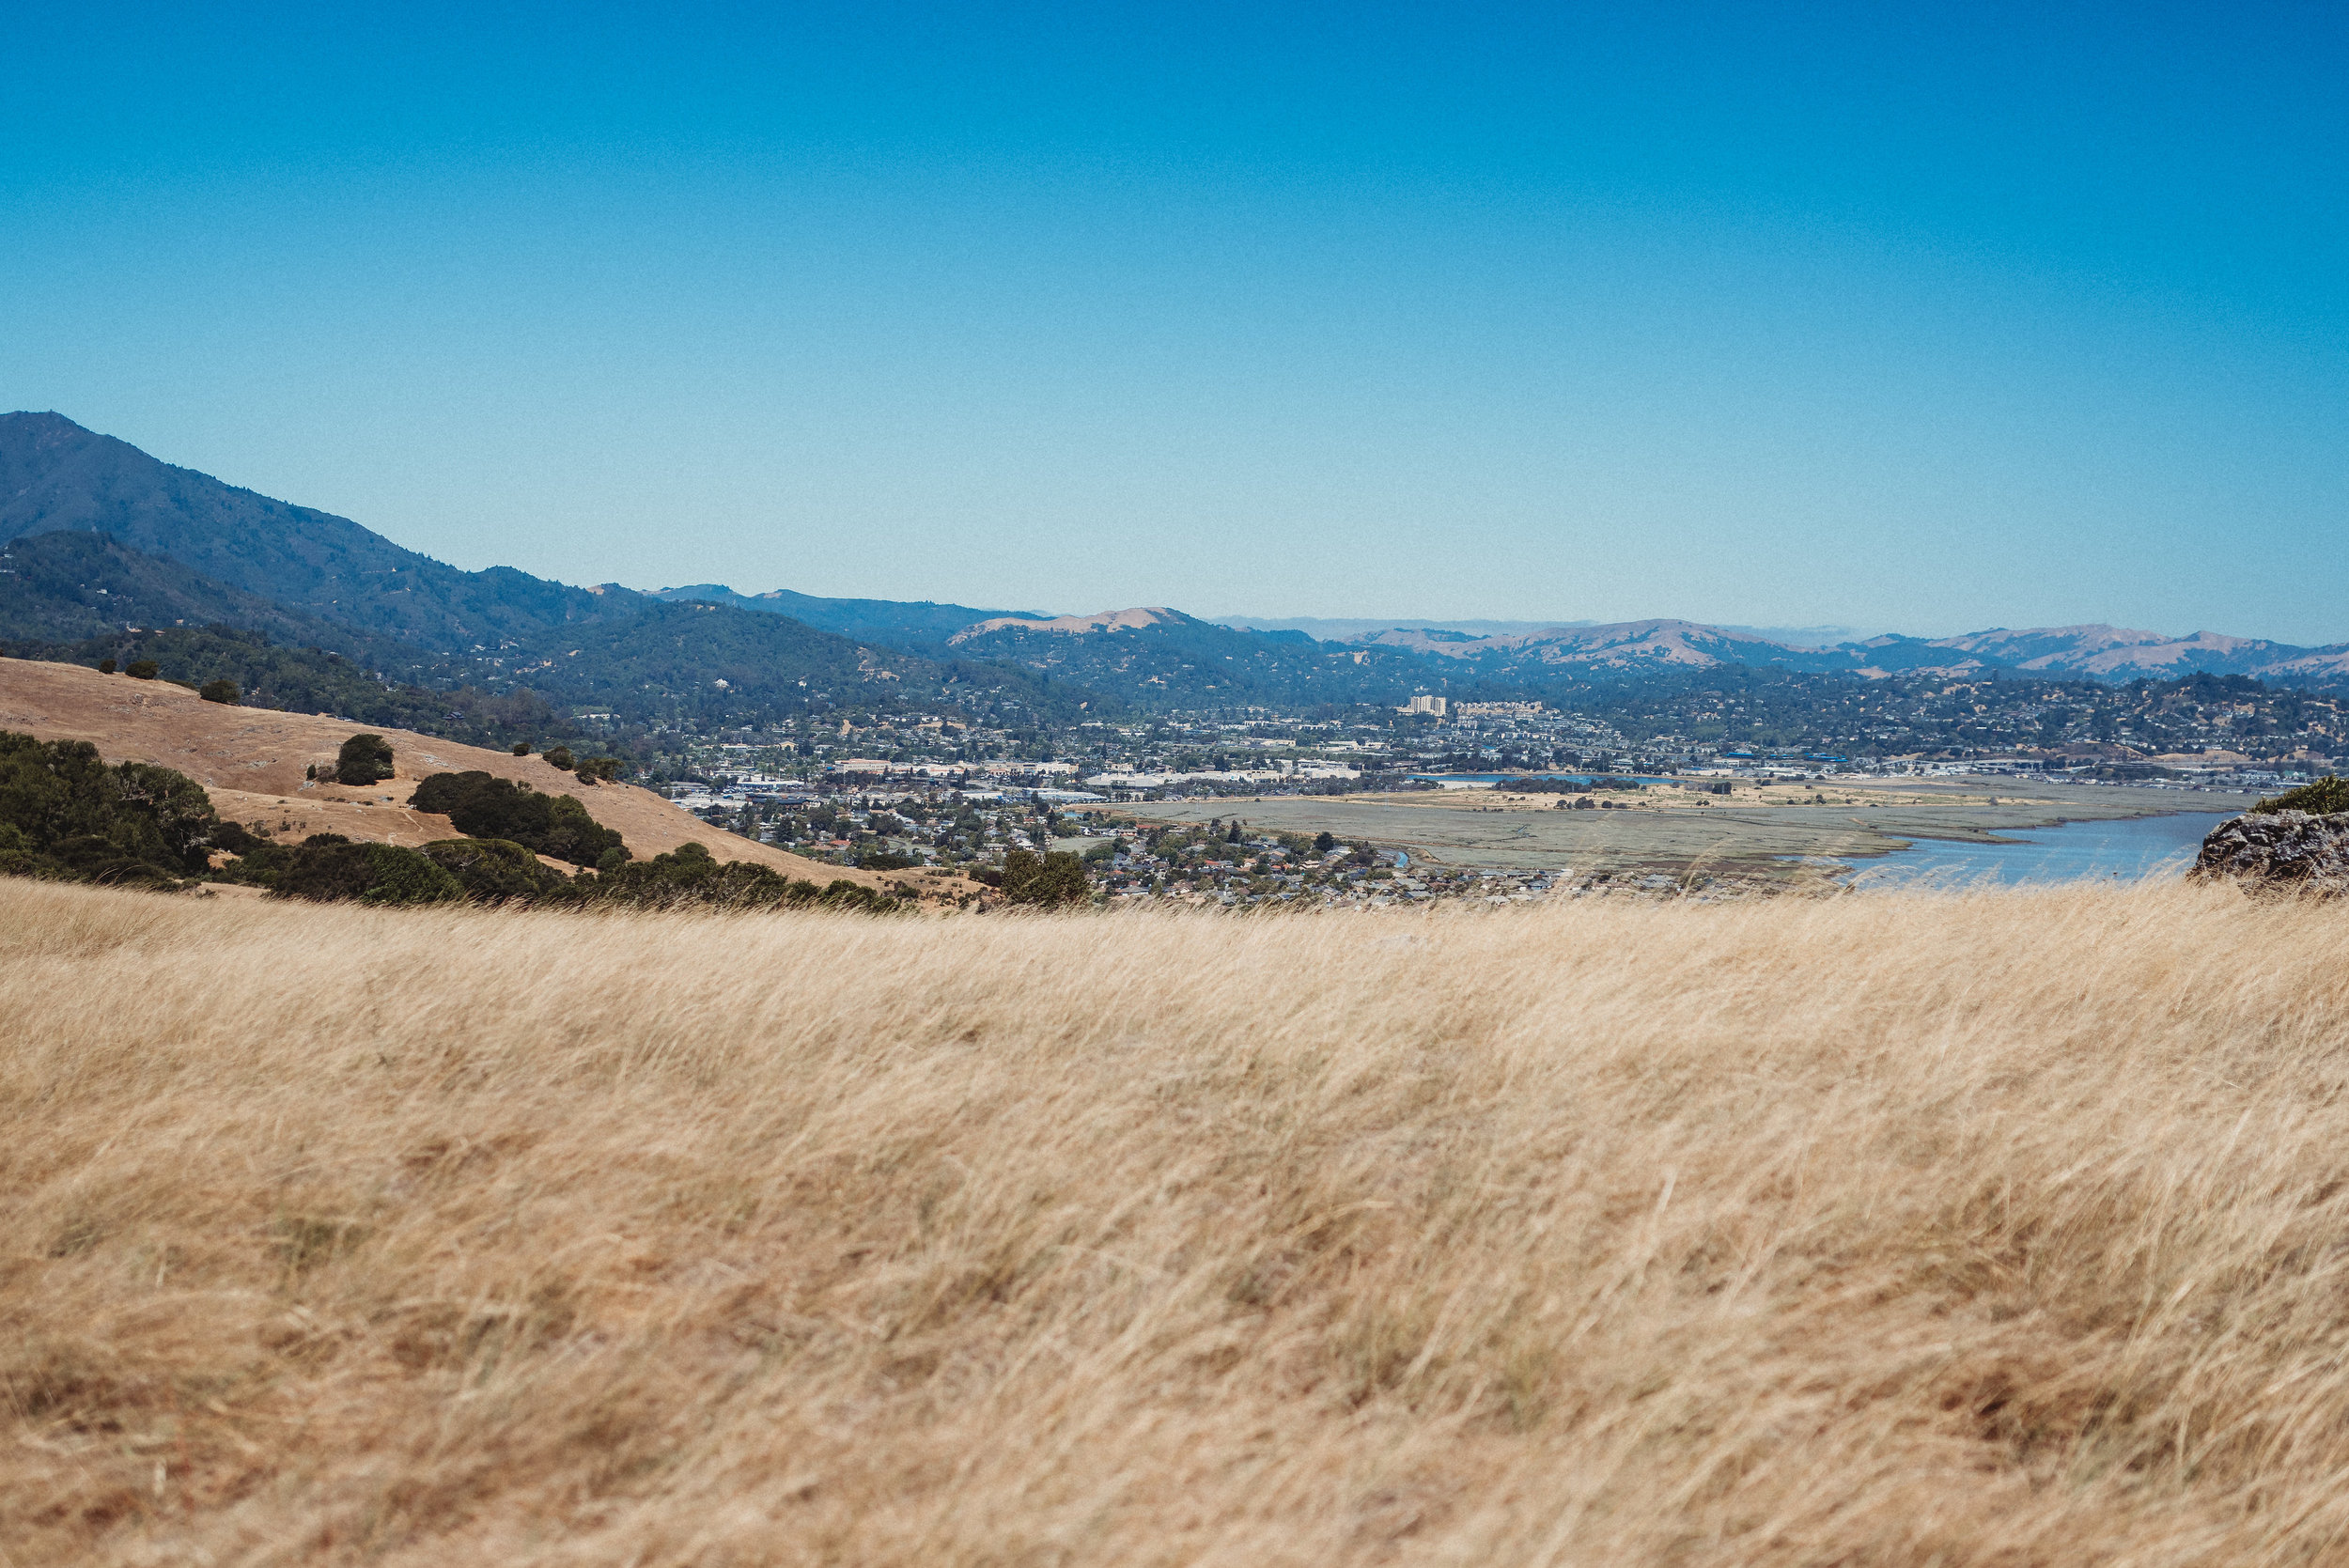 sunday morning family hike family time quality time california mountains hiking1.jpg